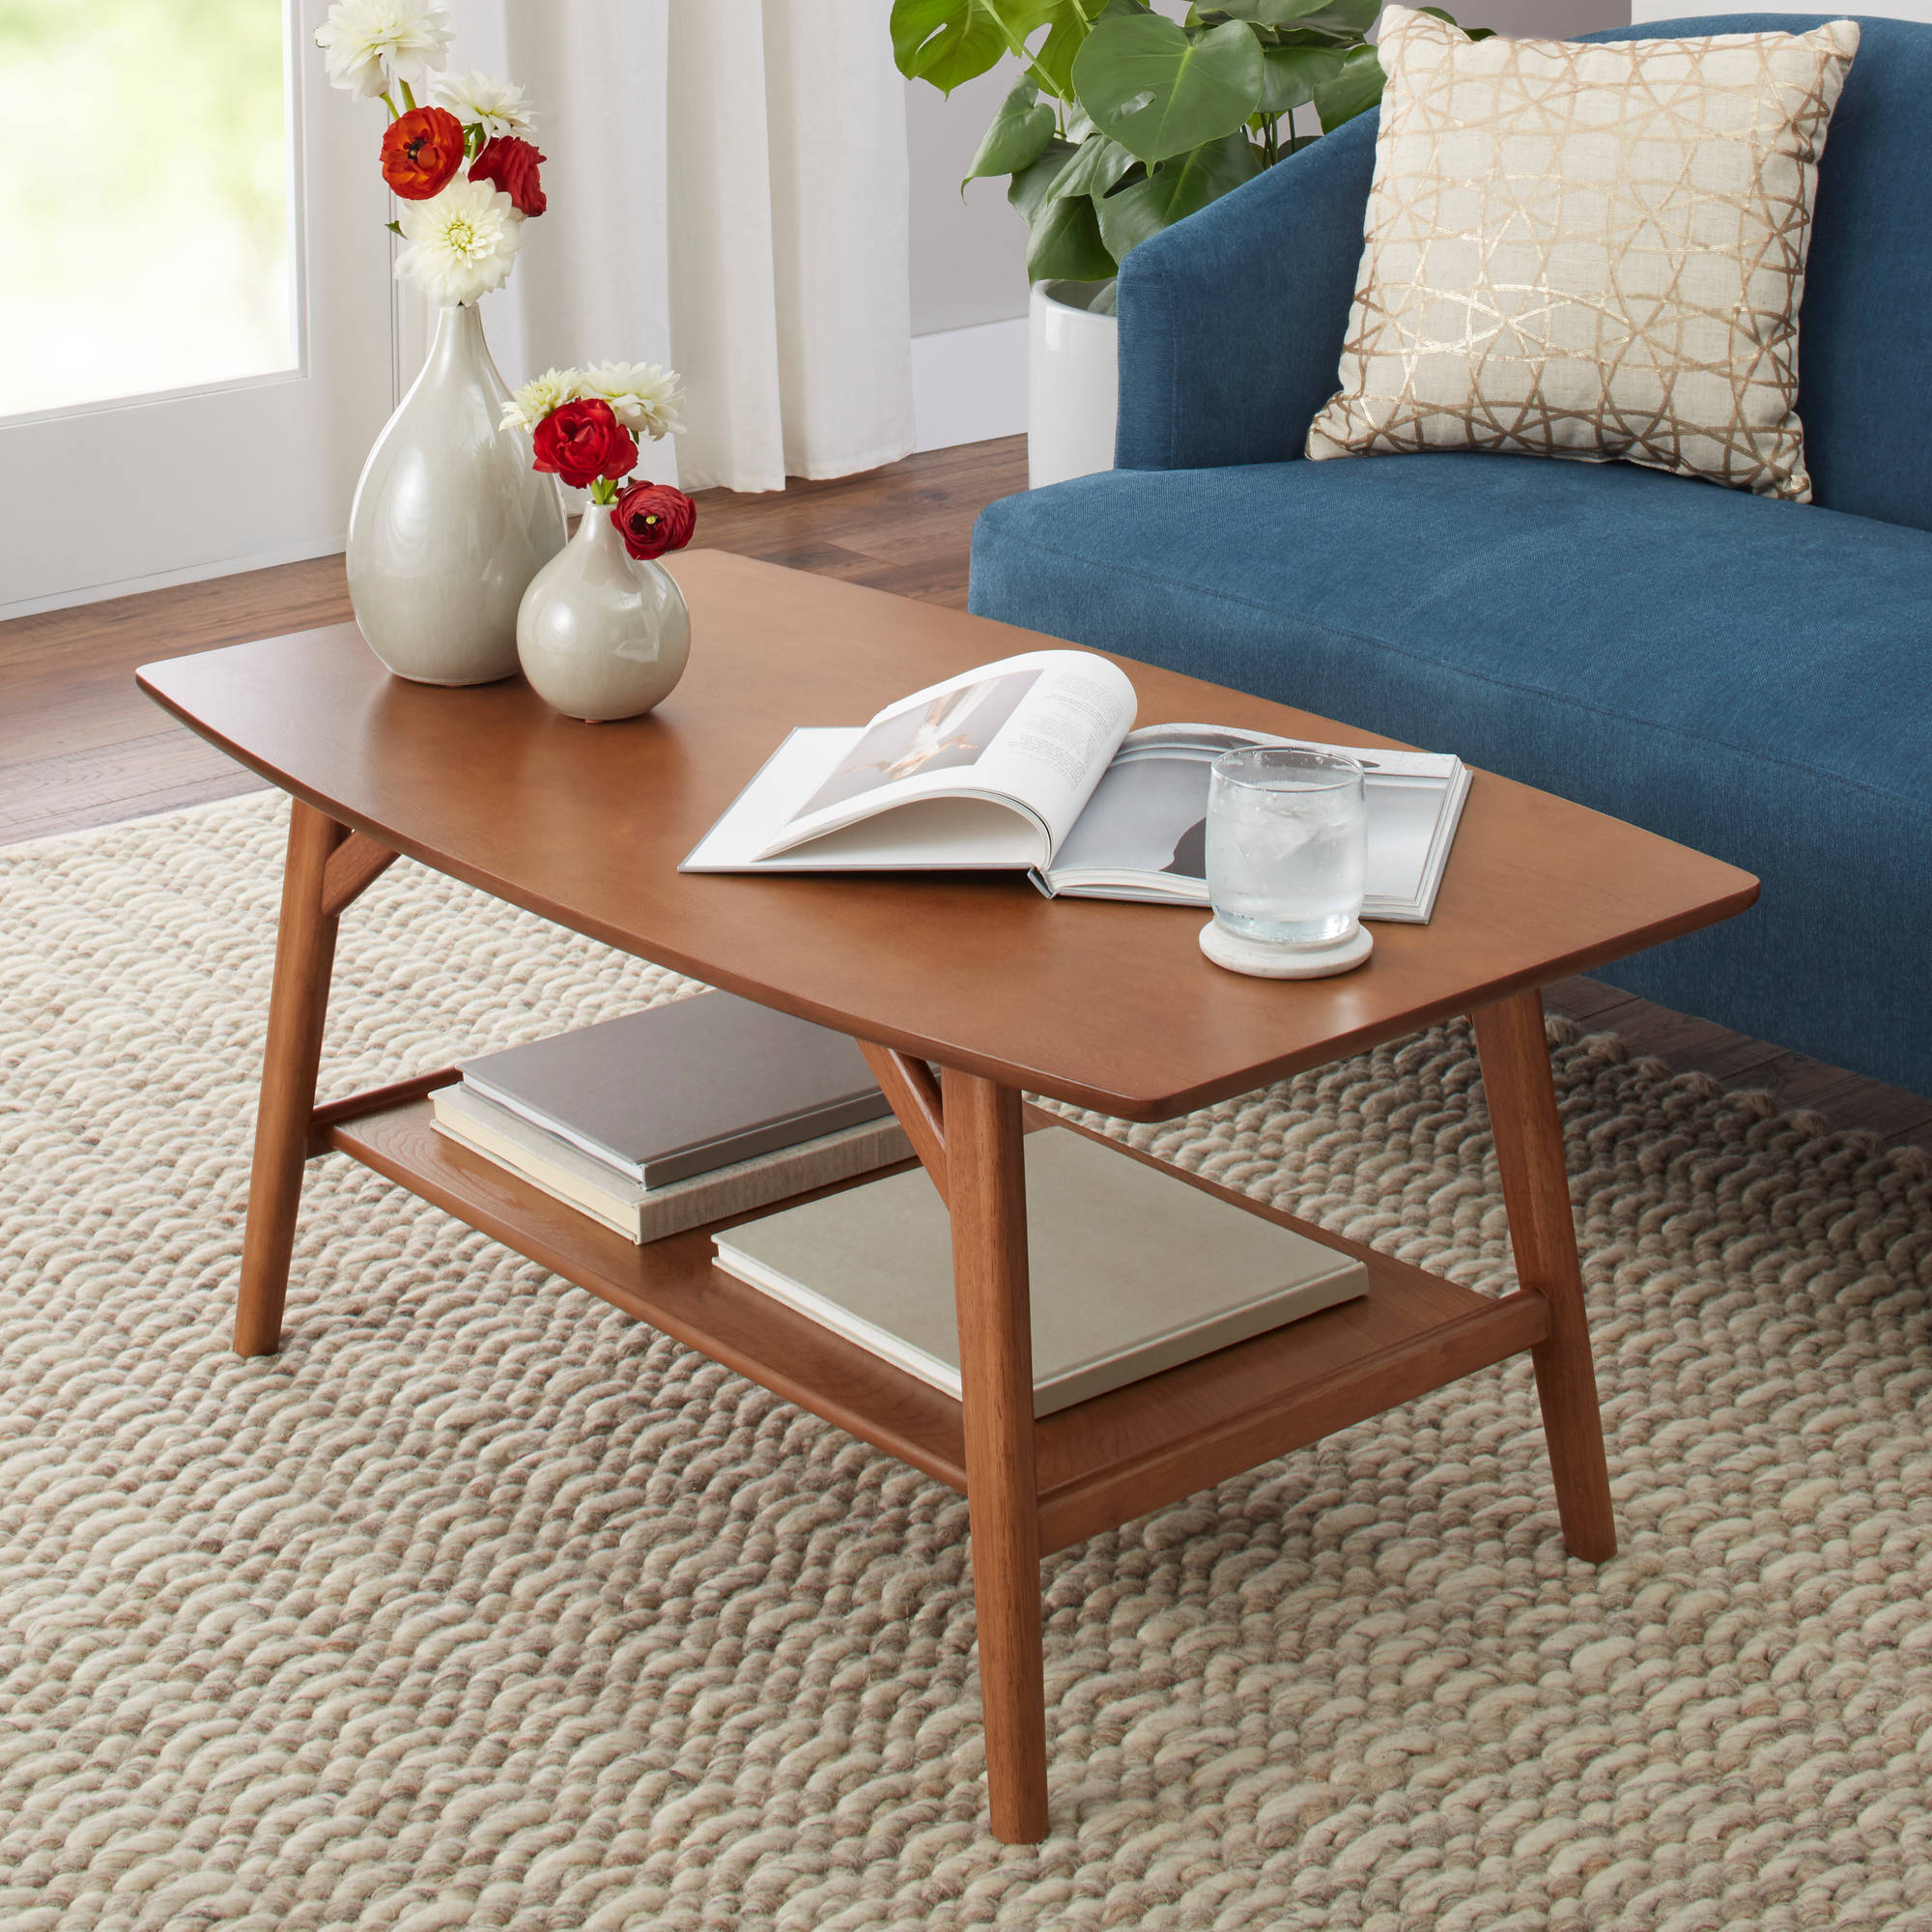 Better Homes & Gardens Reed Mid Century Modern Coffee Table, Pecan